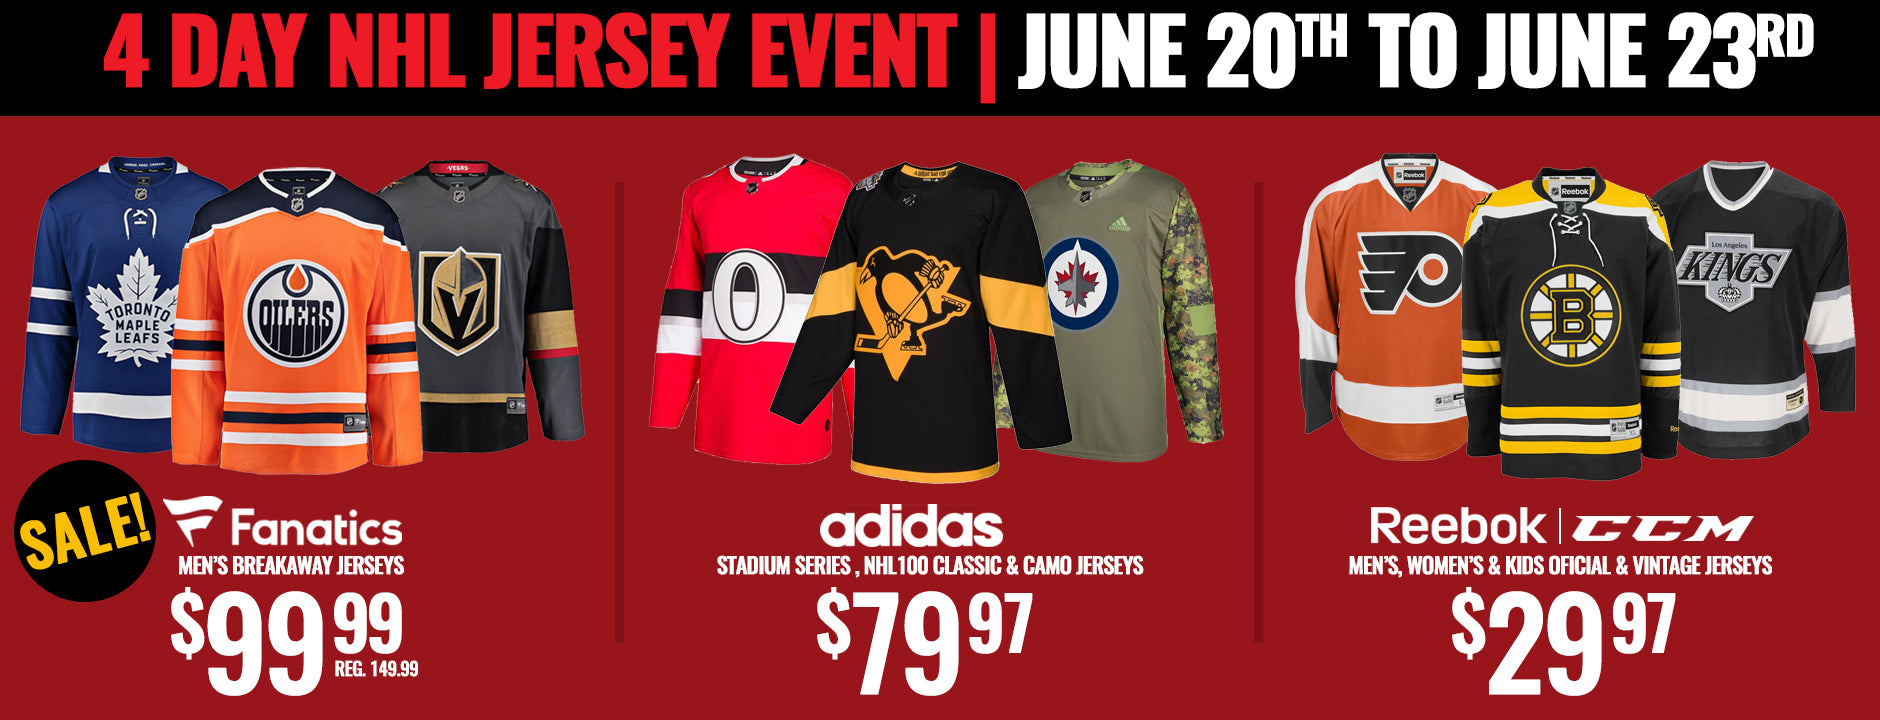 4-Day Jersey Event: Fanatics NHL Jerseys